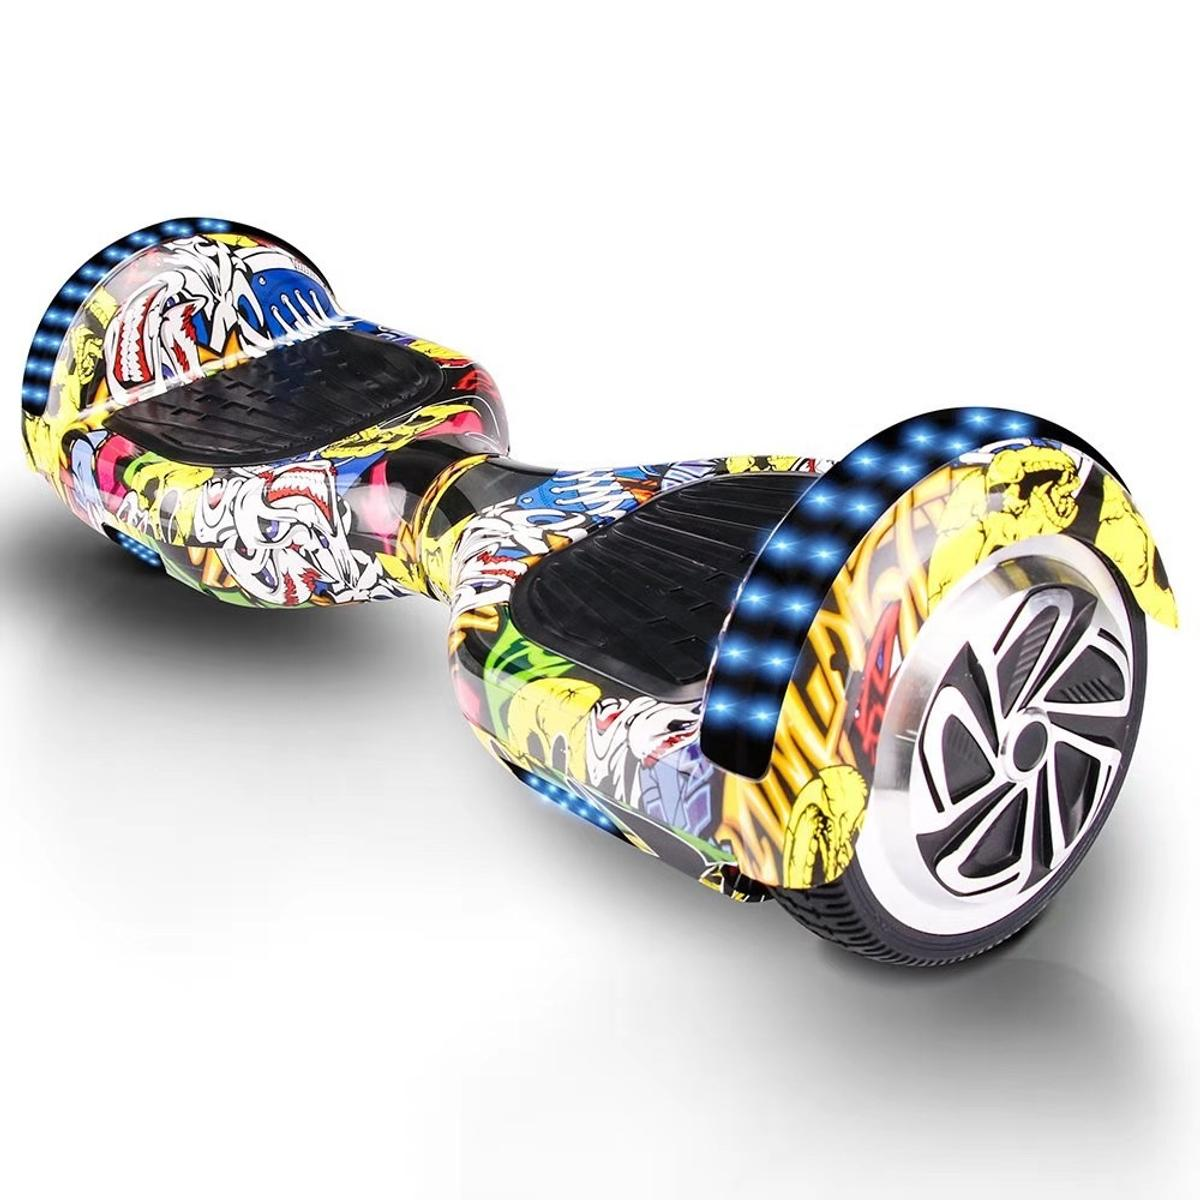 Segway Hoverboard Bluetooth With Lights New In Dy9 Dudley For 135 00 For Sale Shpock